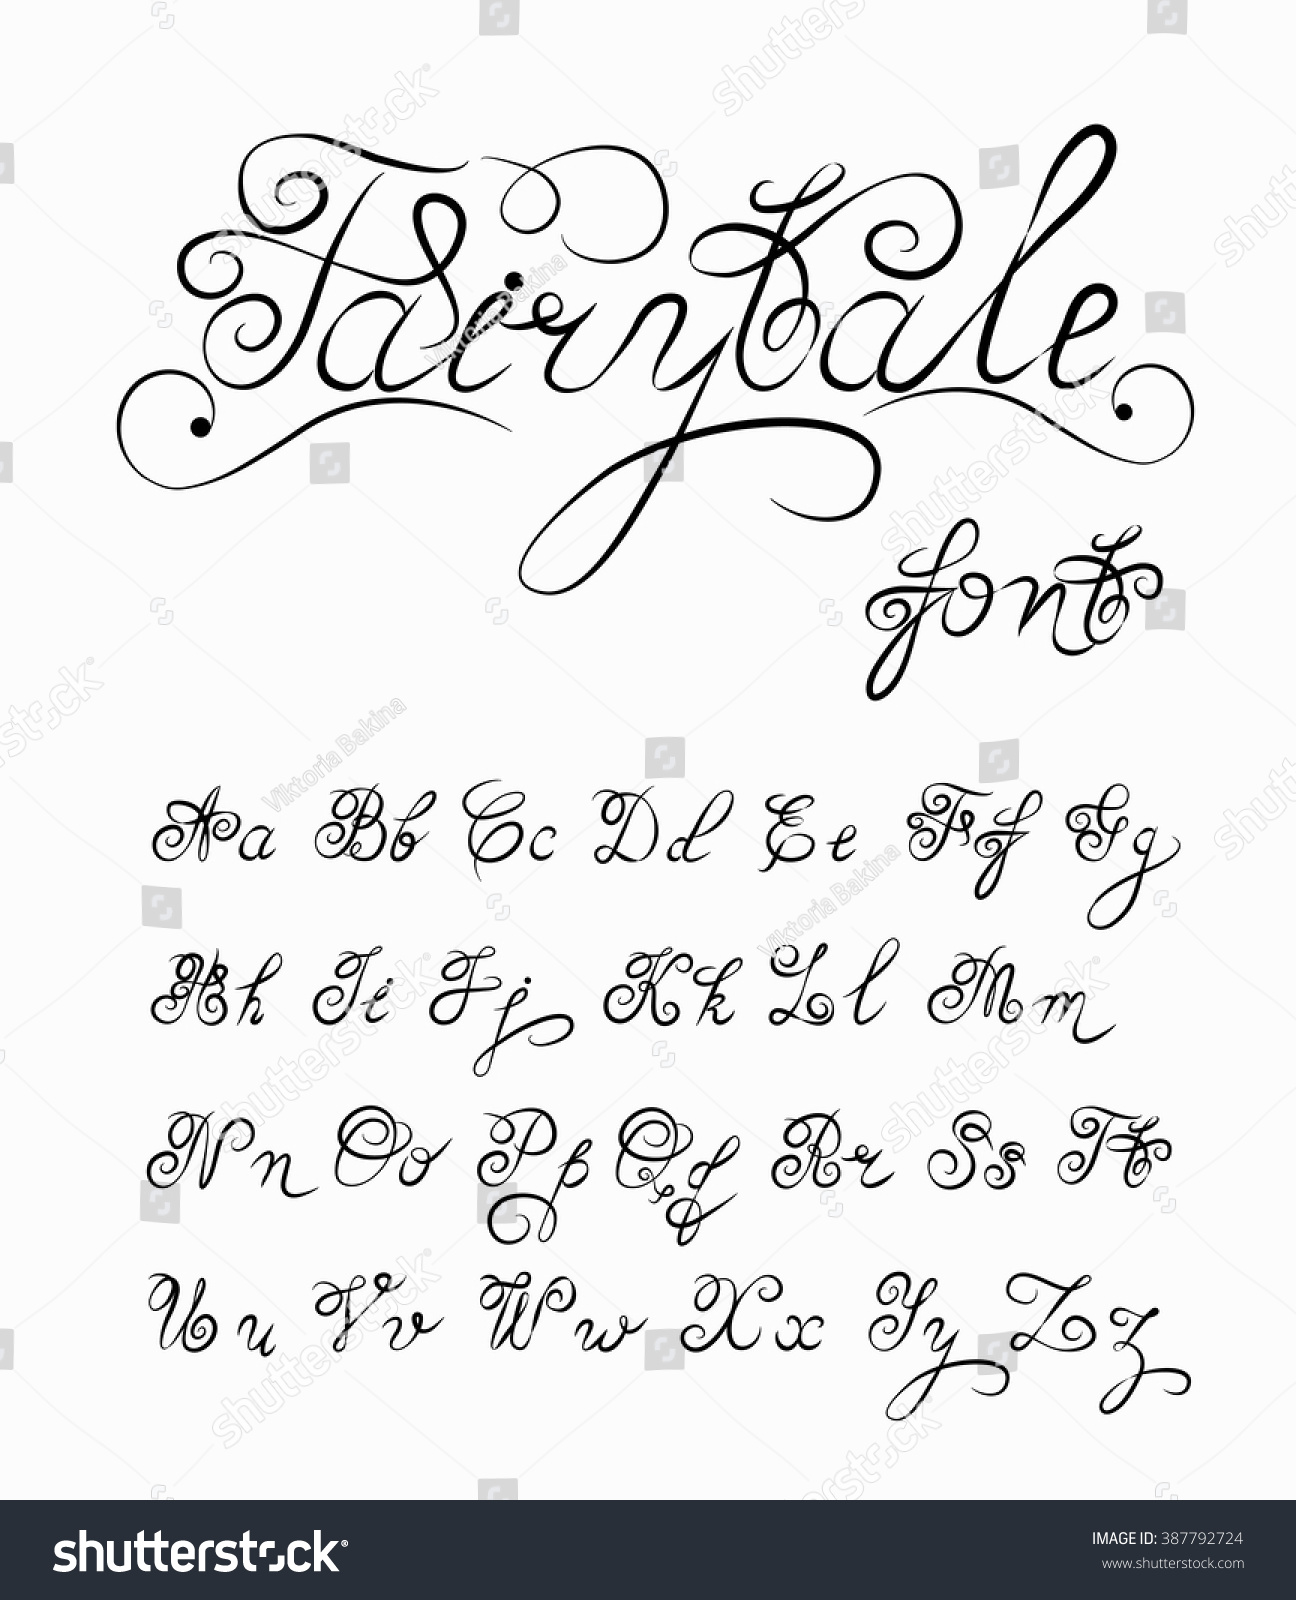 Fairytale vector hand drawn calligraphic font stock